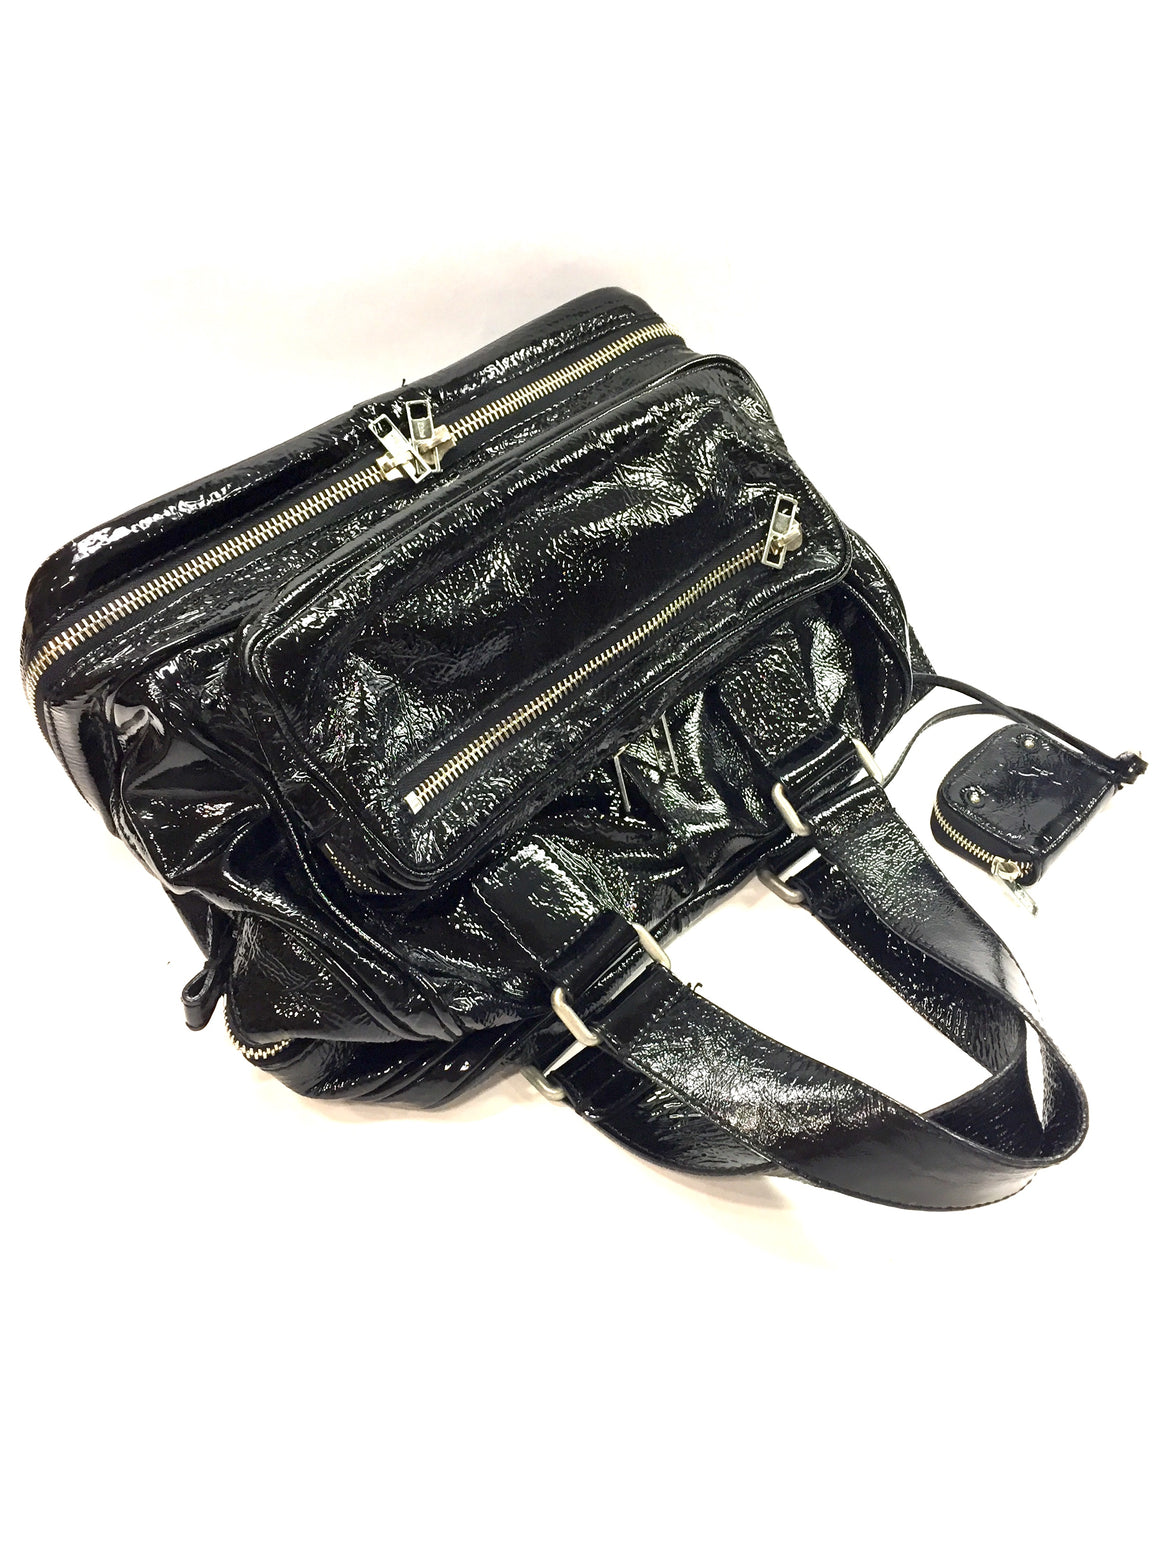 CHLOE Black Crinkled Patent Leather Zip-Around Base Hand Bag Satchel